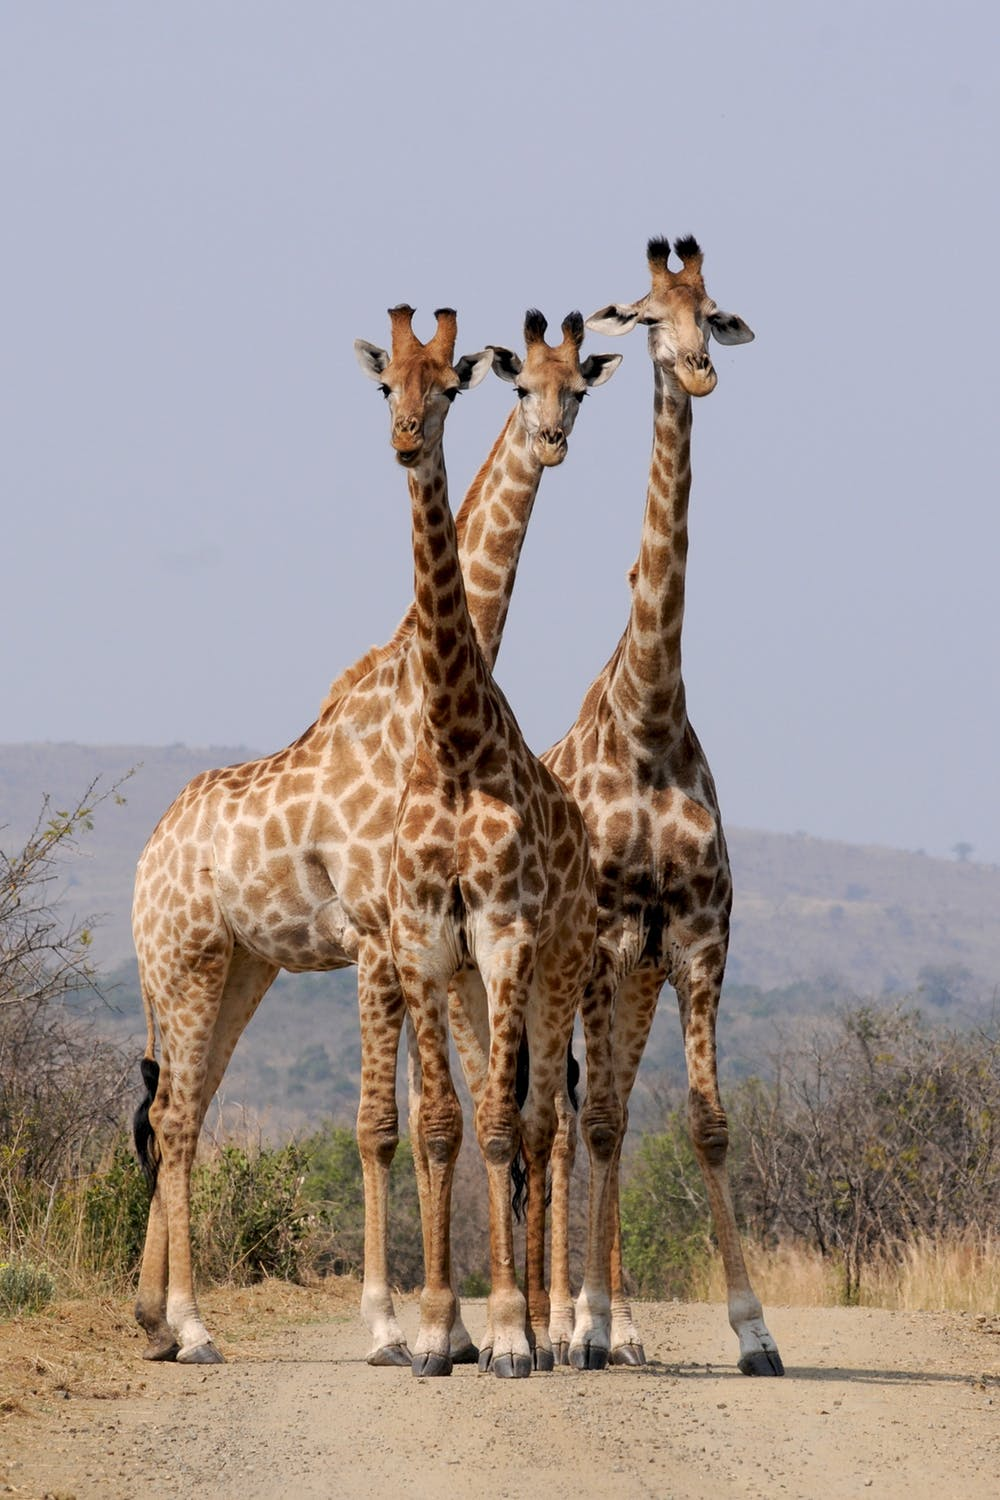 tower of giraffes in South Africa